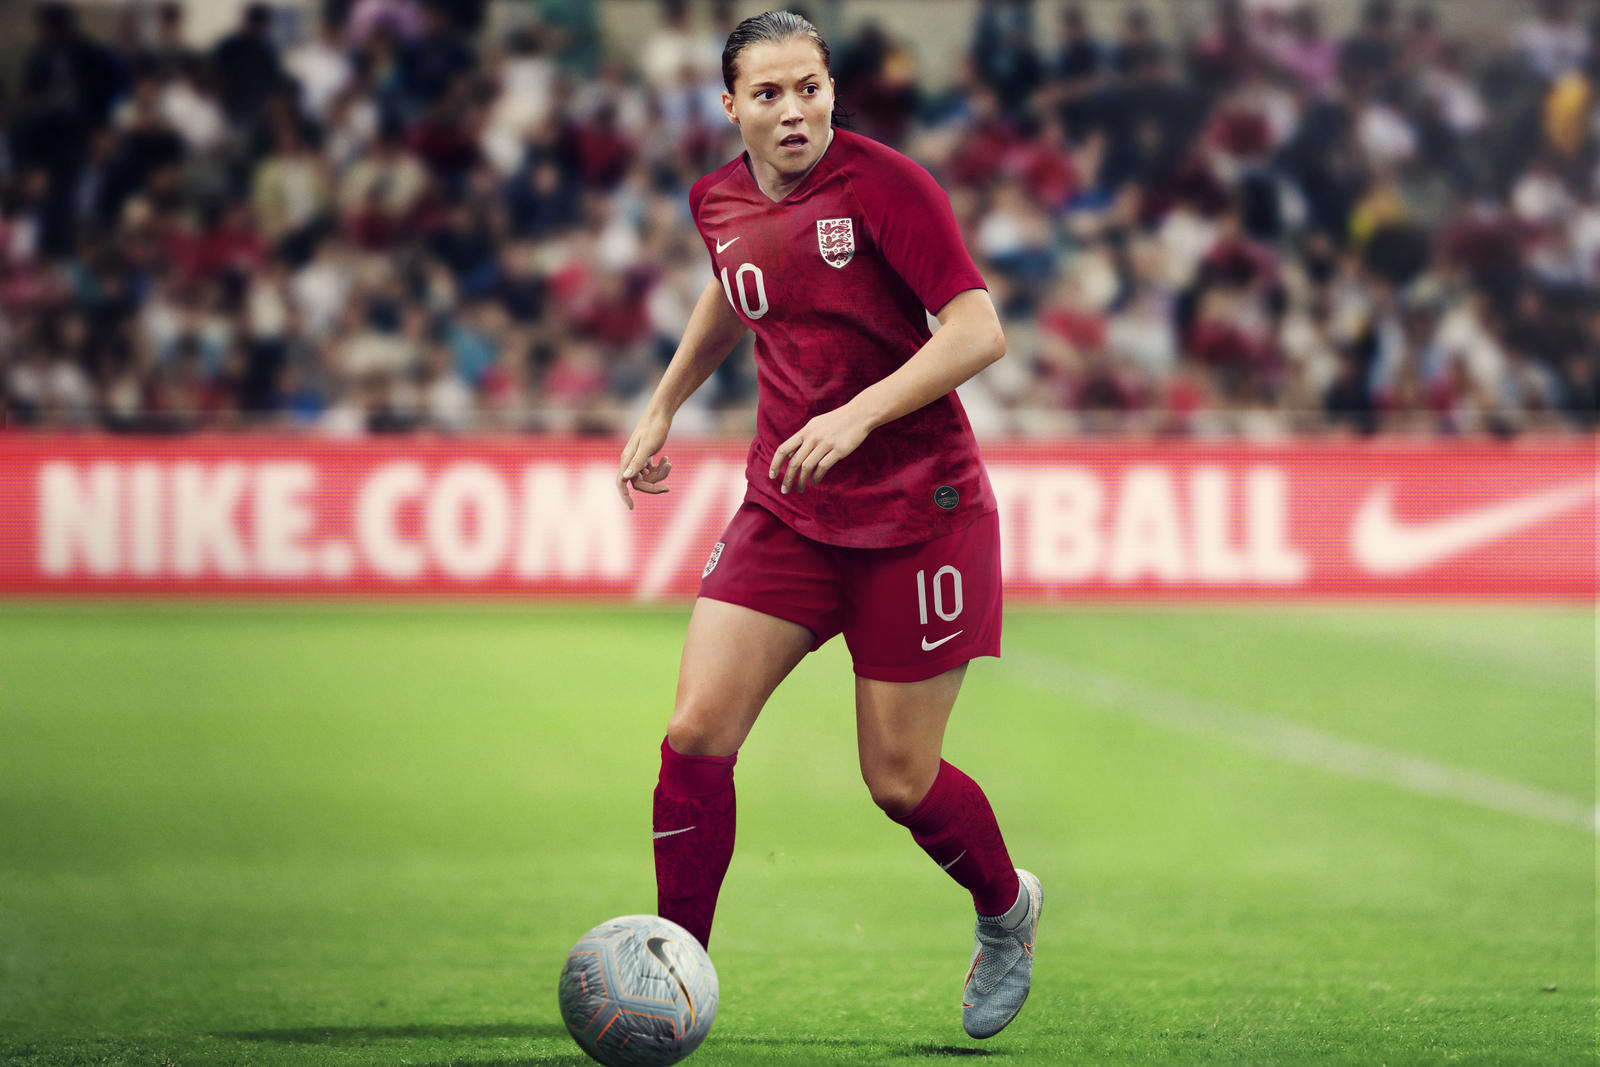 2afe01246fb England 2019 Women s Football Kit - Nike News